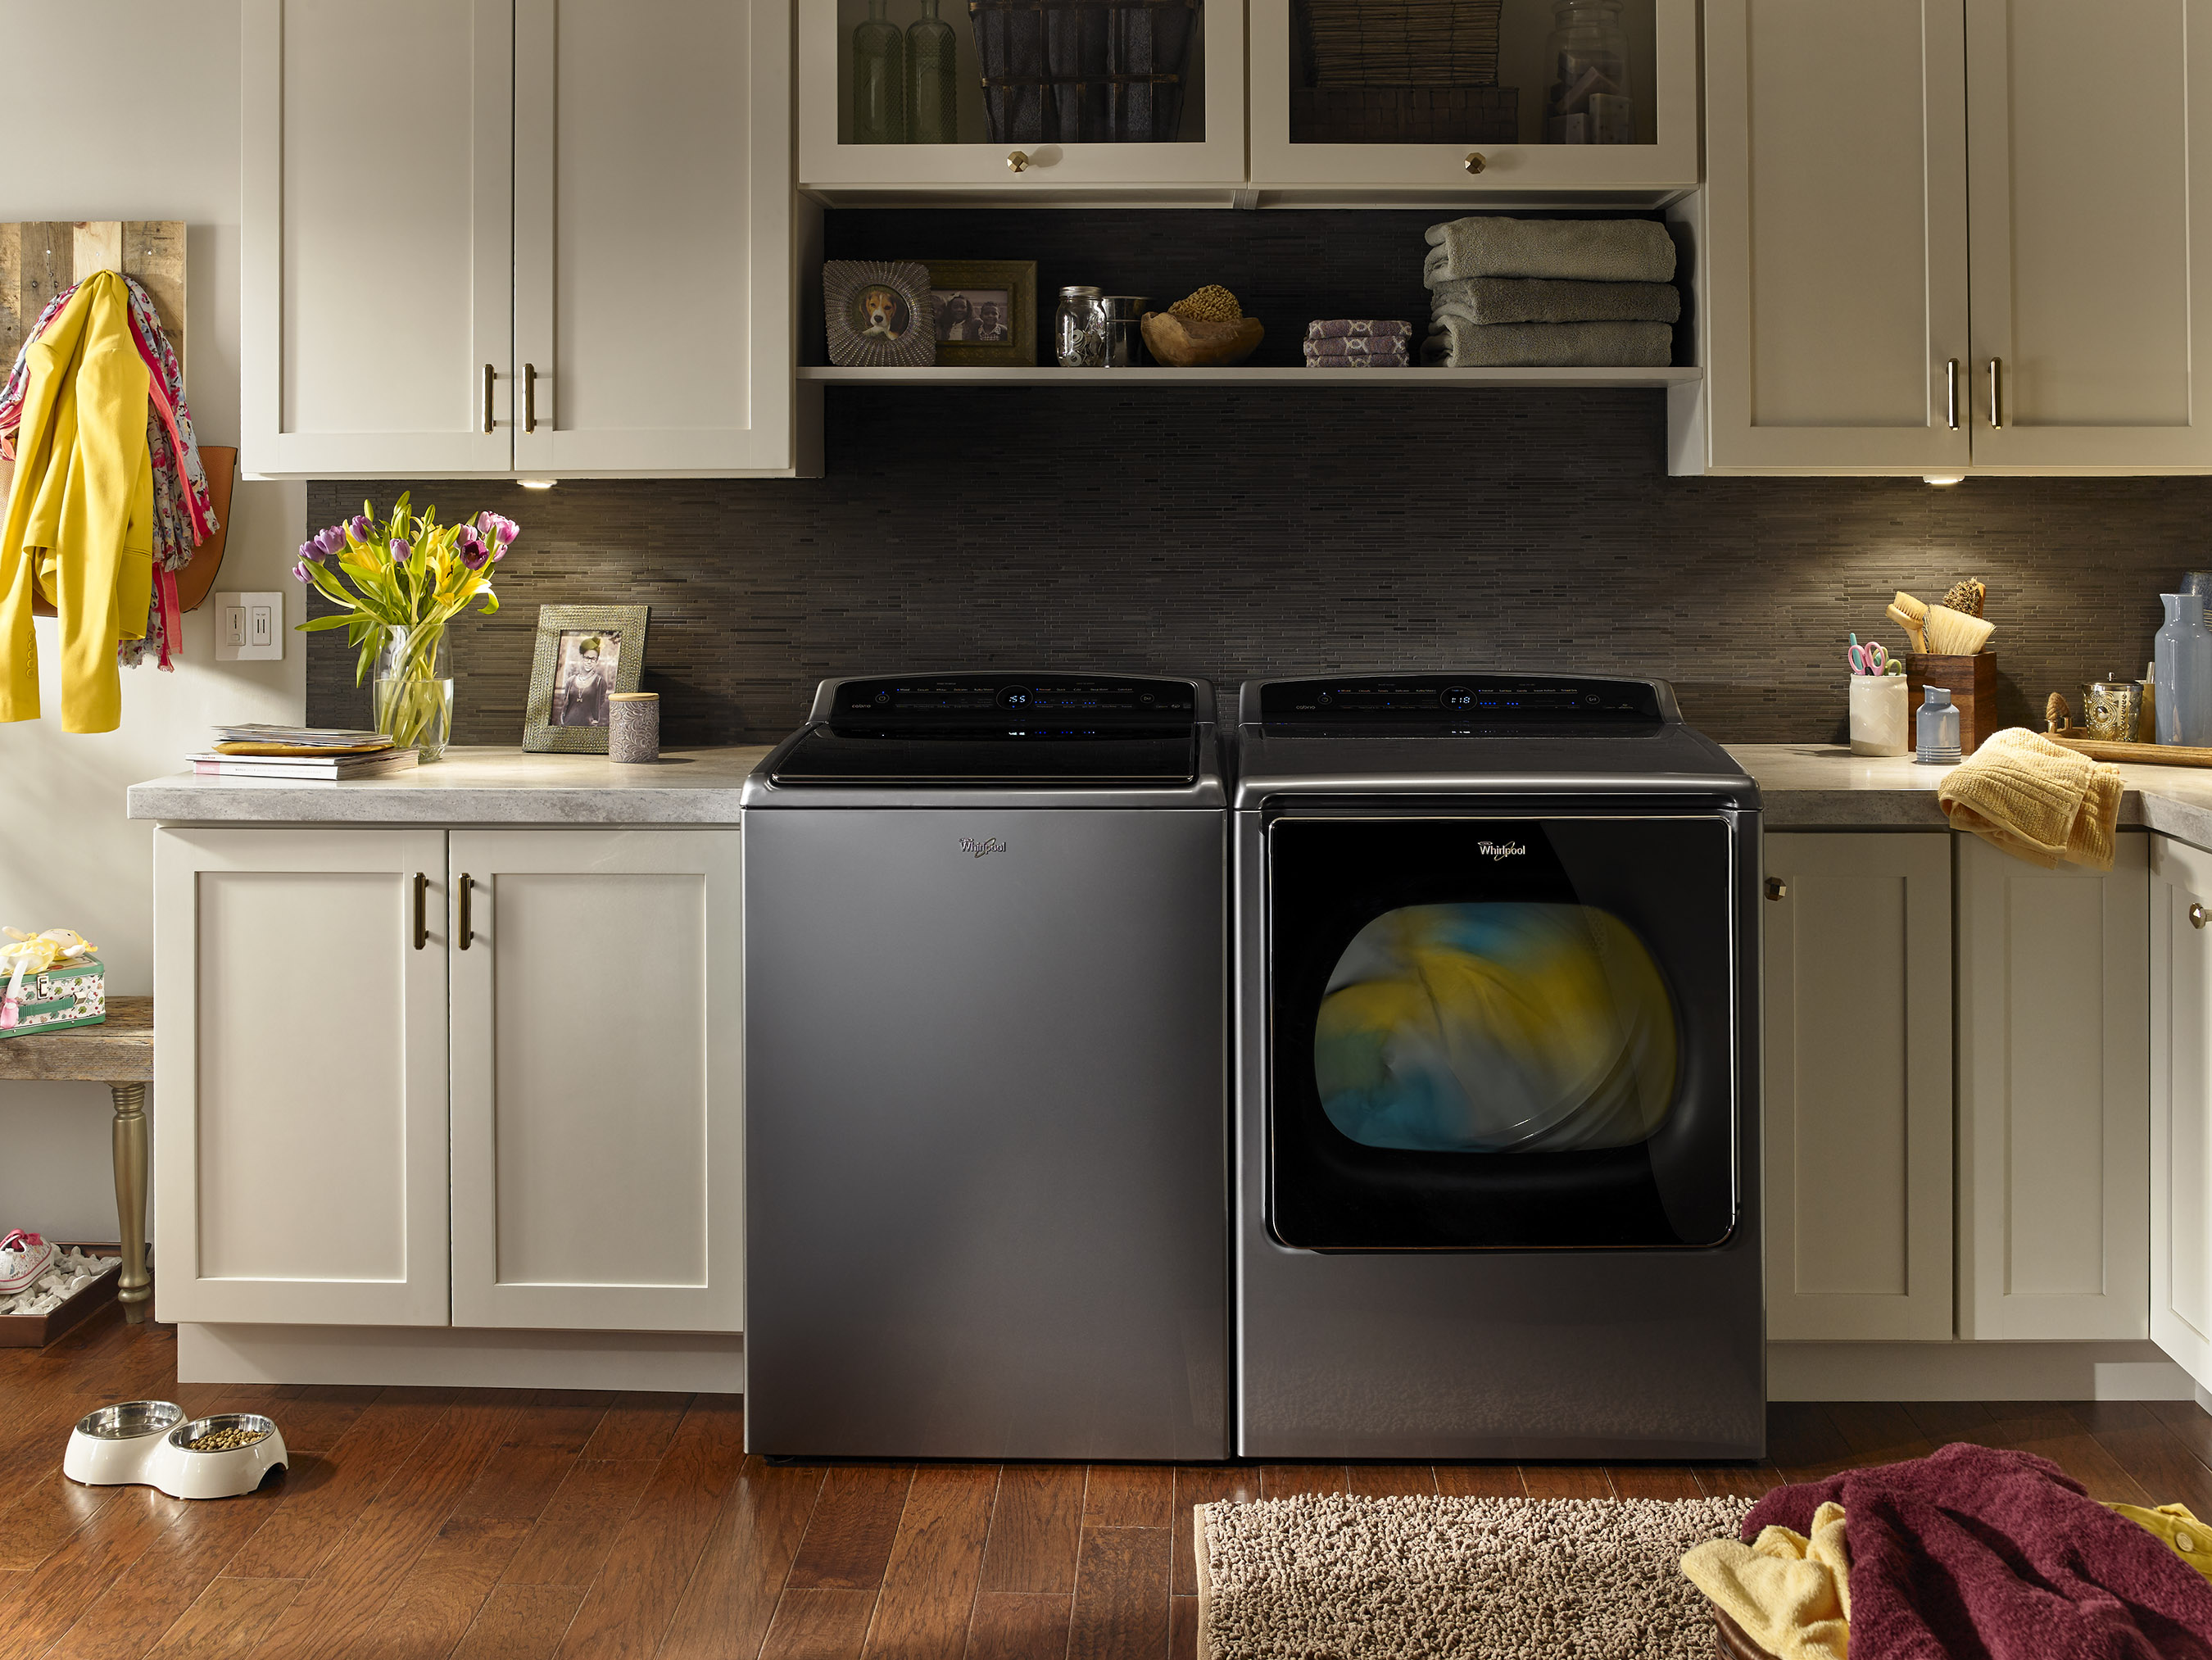 The Whirlpool® Smart Top Load Washer and Dryer introduces the use of technology to power philanthropic donations and ability to auto re-order laundry supplies.